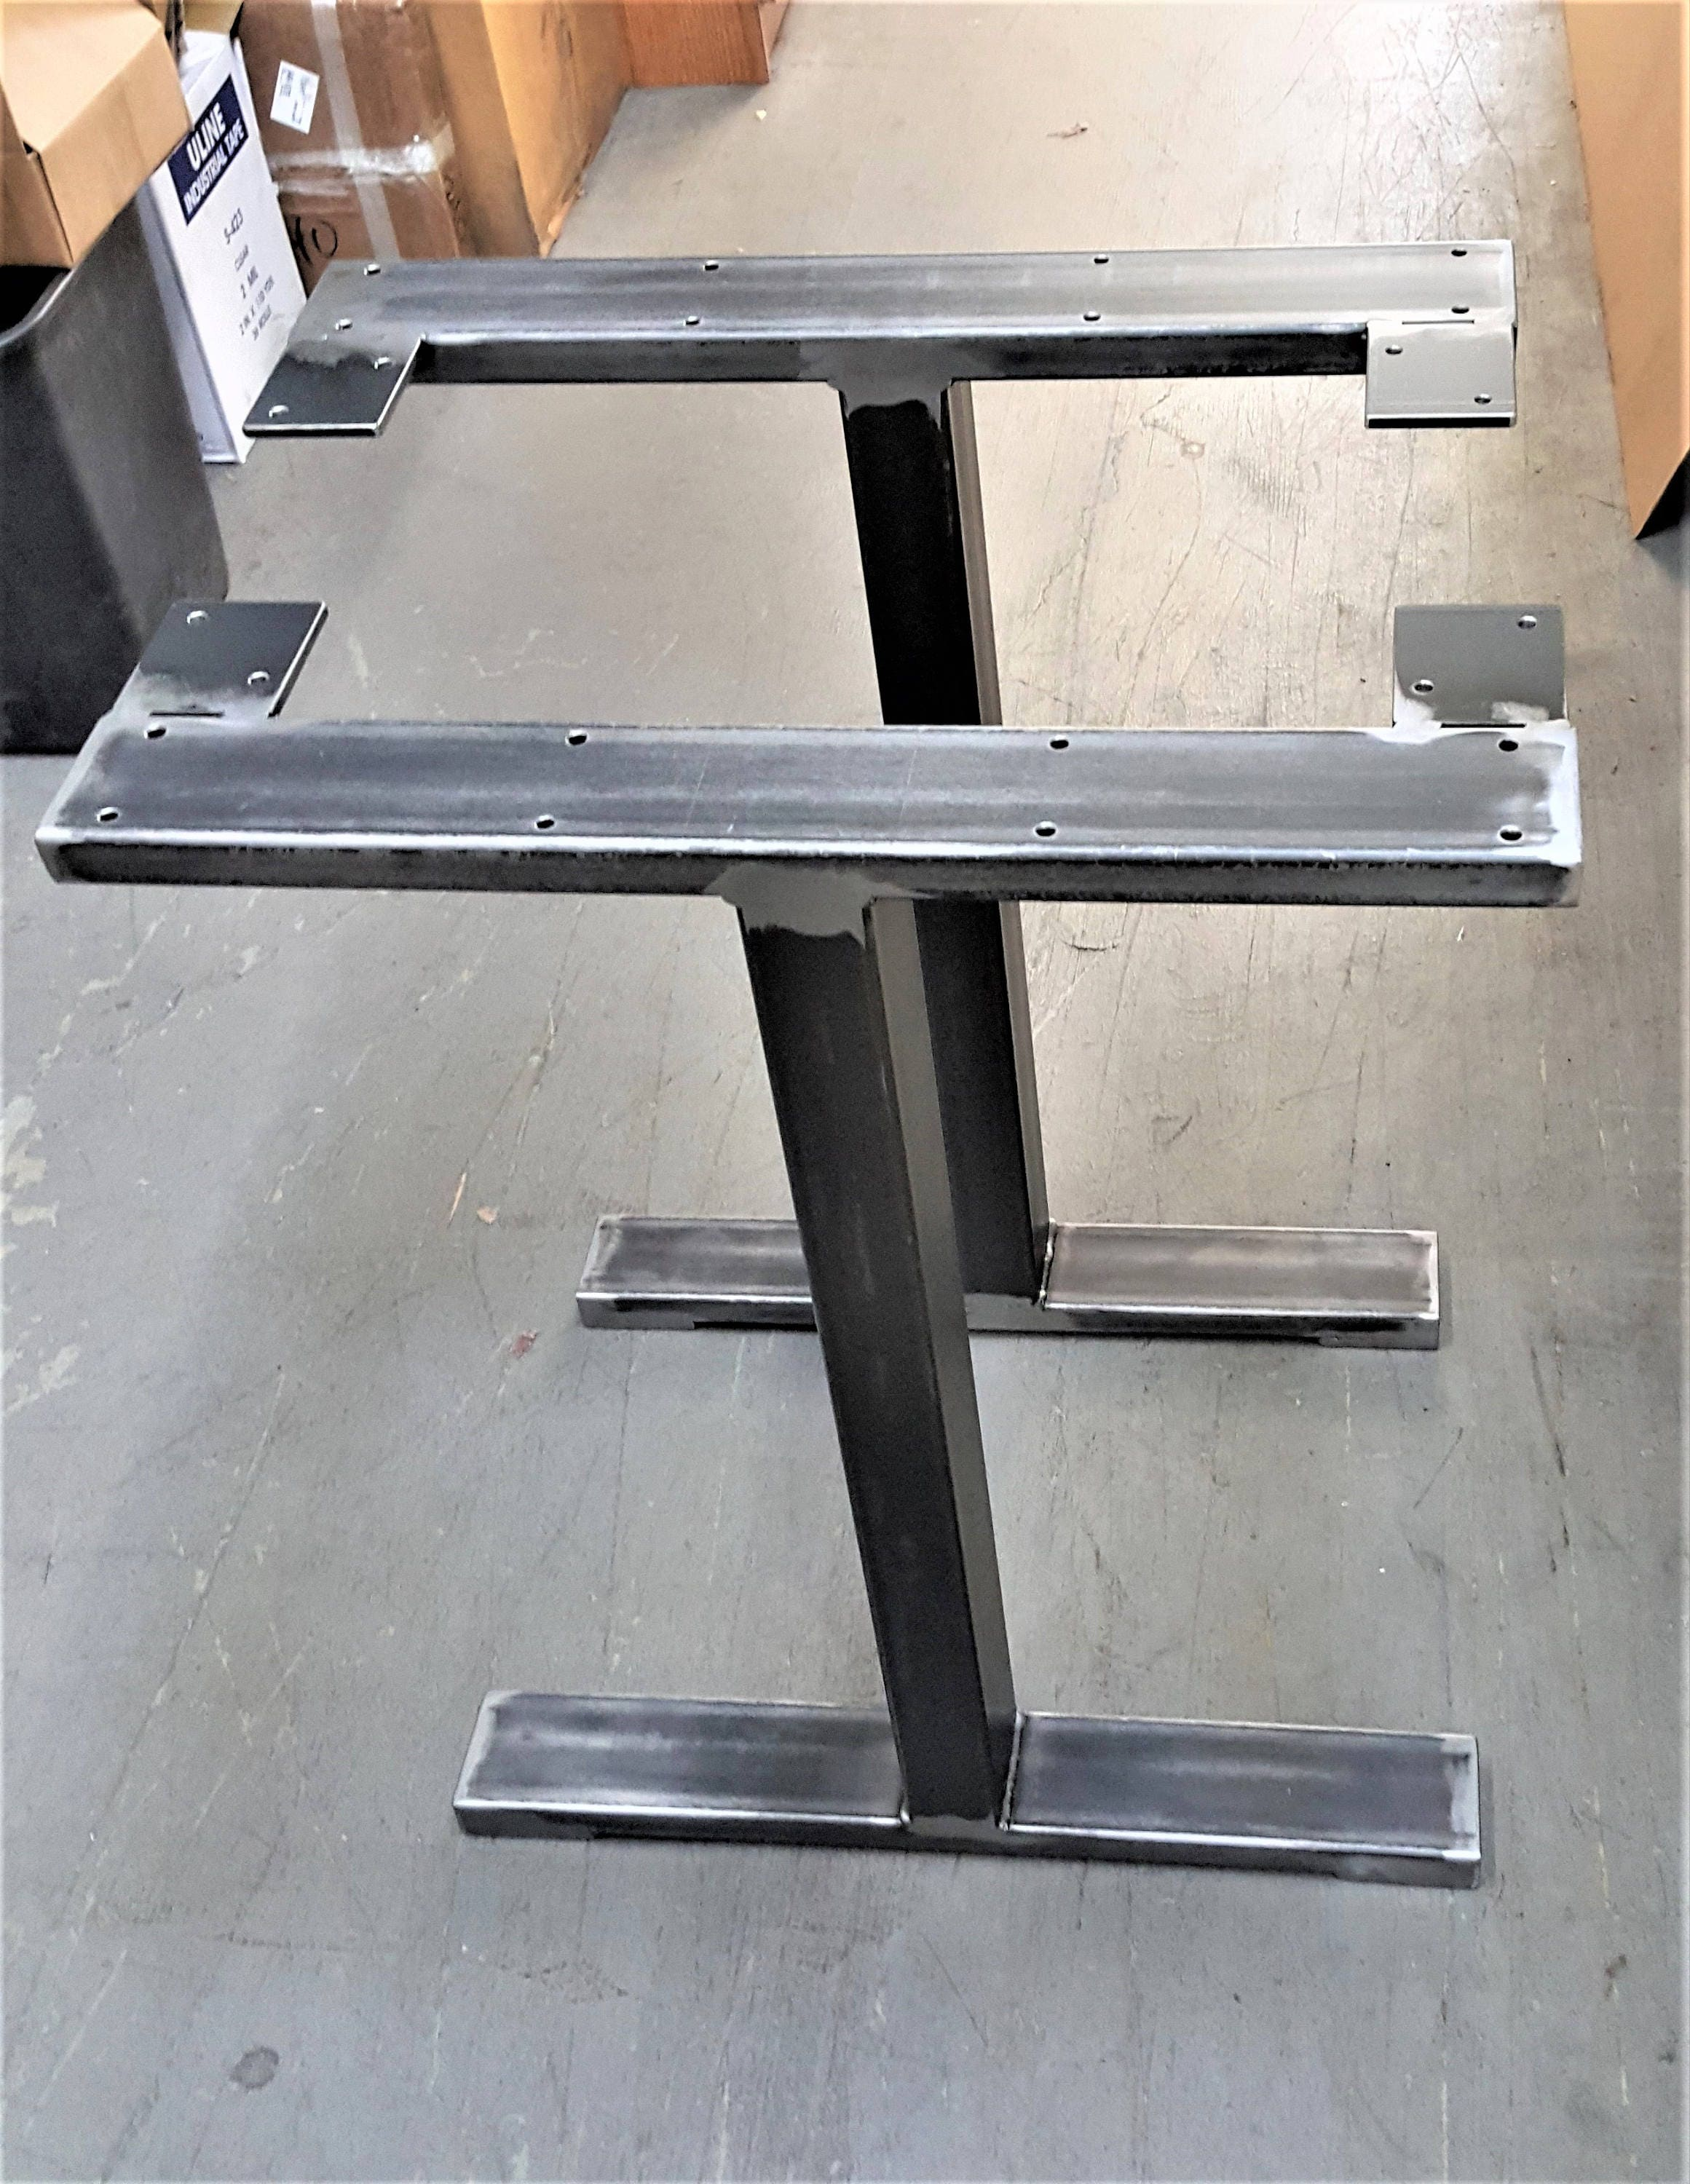 Industrial T Style Table Legs. Model #TT06S, Table Metal Legs, End Table  Legs, 3 X 1 And 3 X 3 Tubing, Set Of 2 Legs